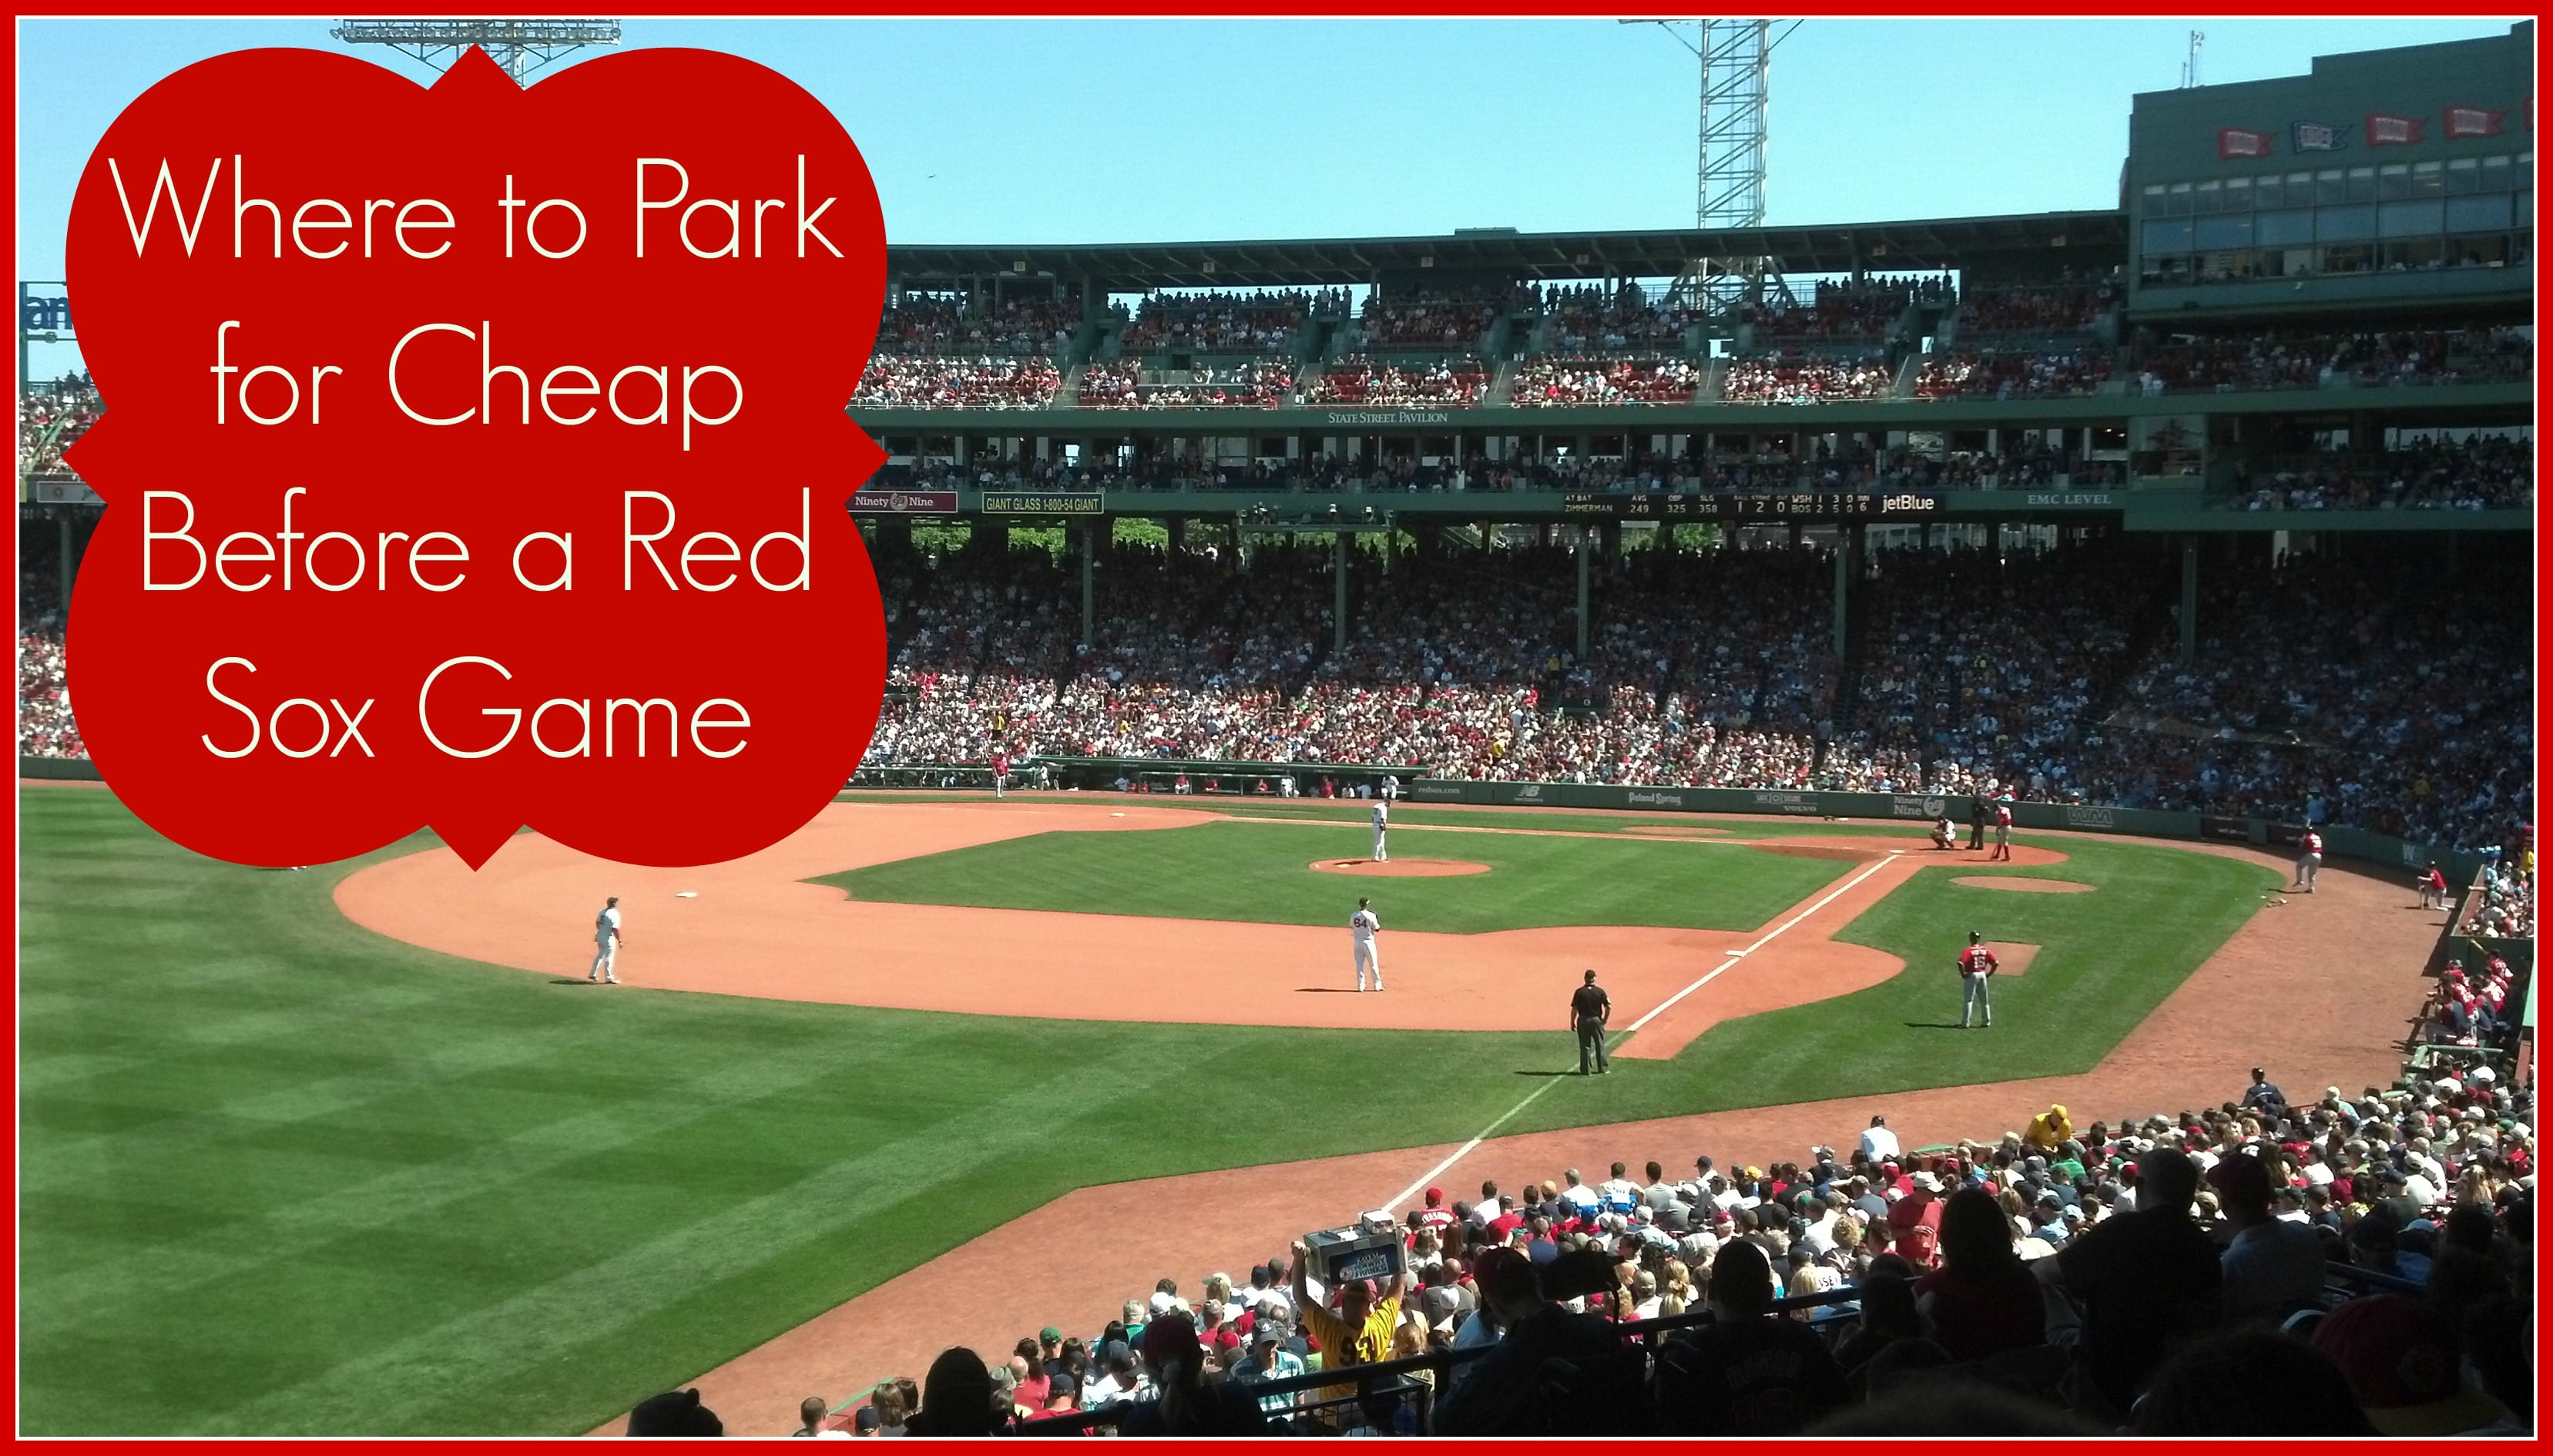 Cheapest Garage In Boston How To Save At Fenway Park Cheap Parking On Game Days Boston On